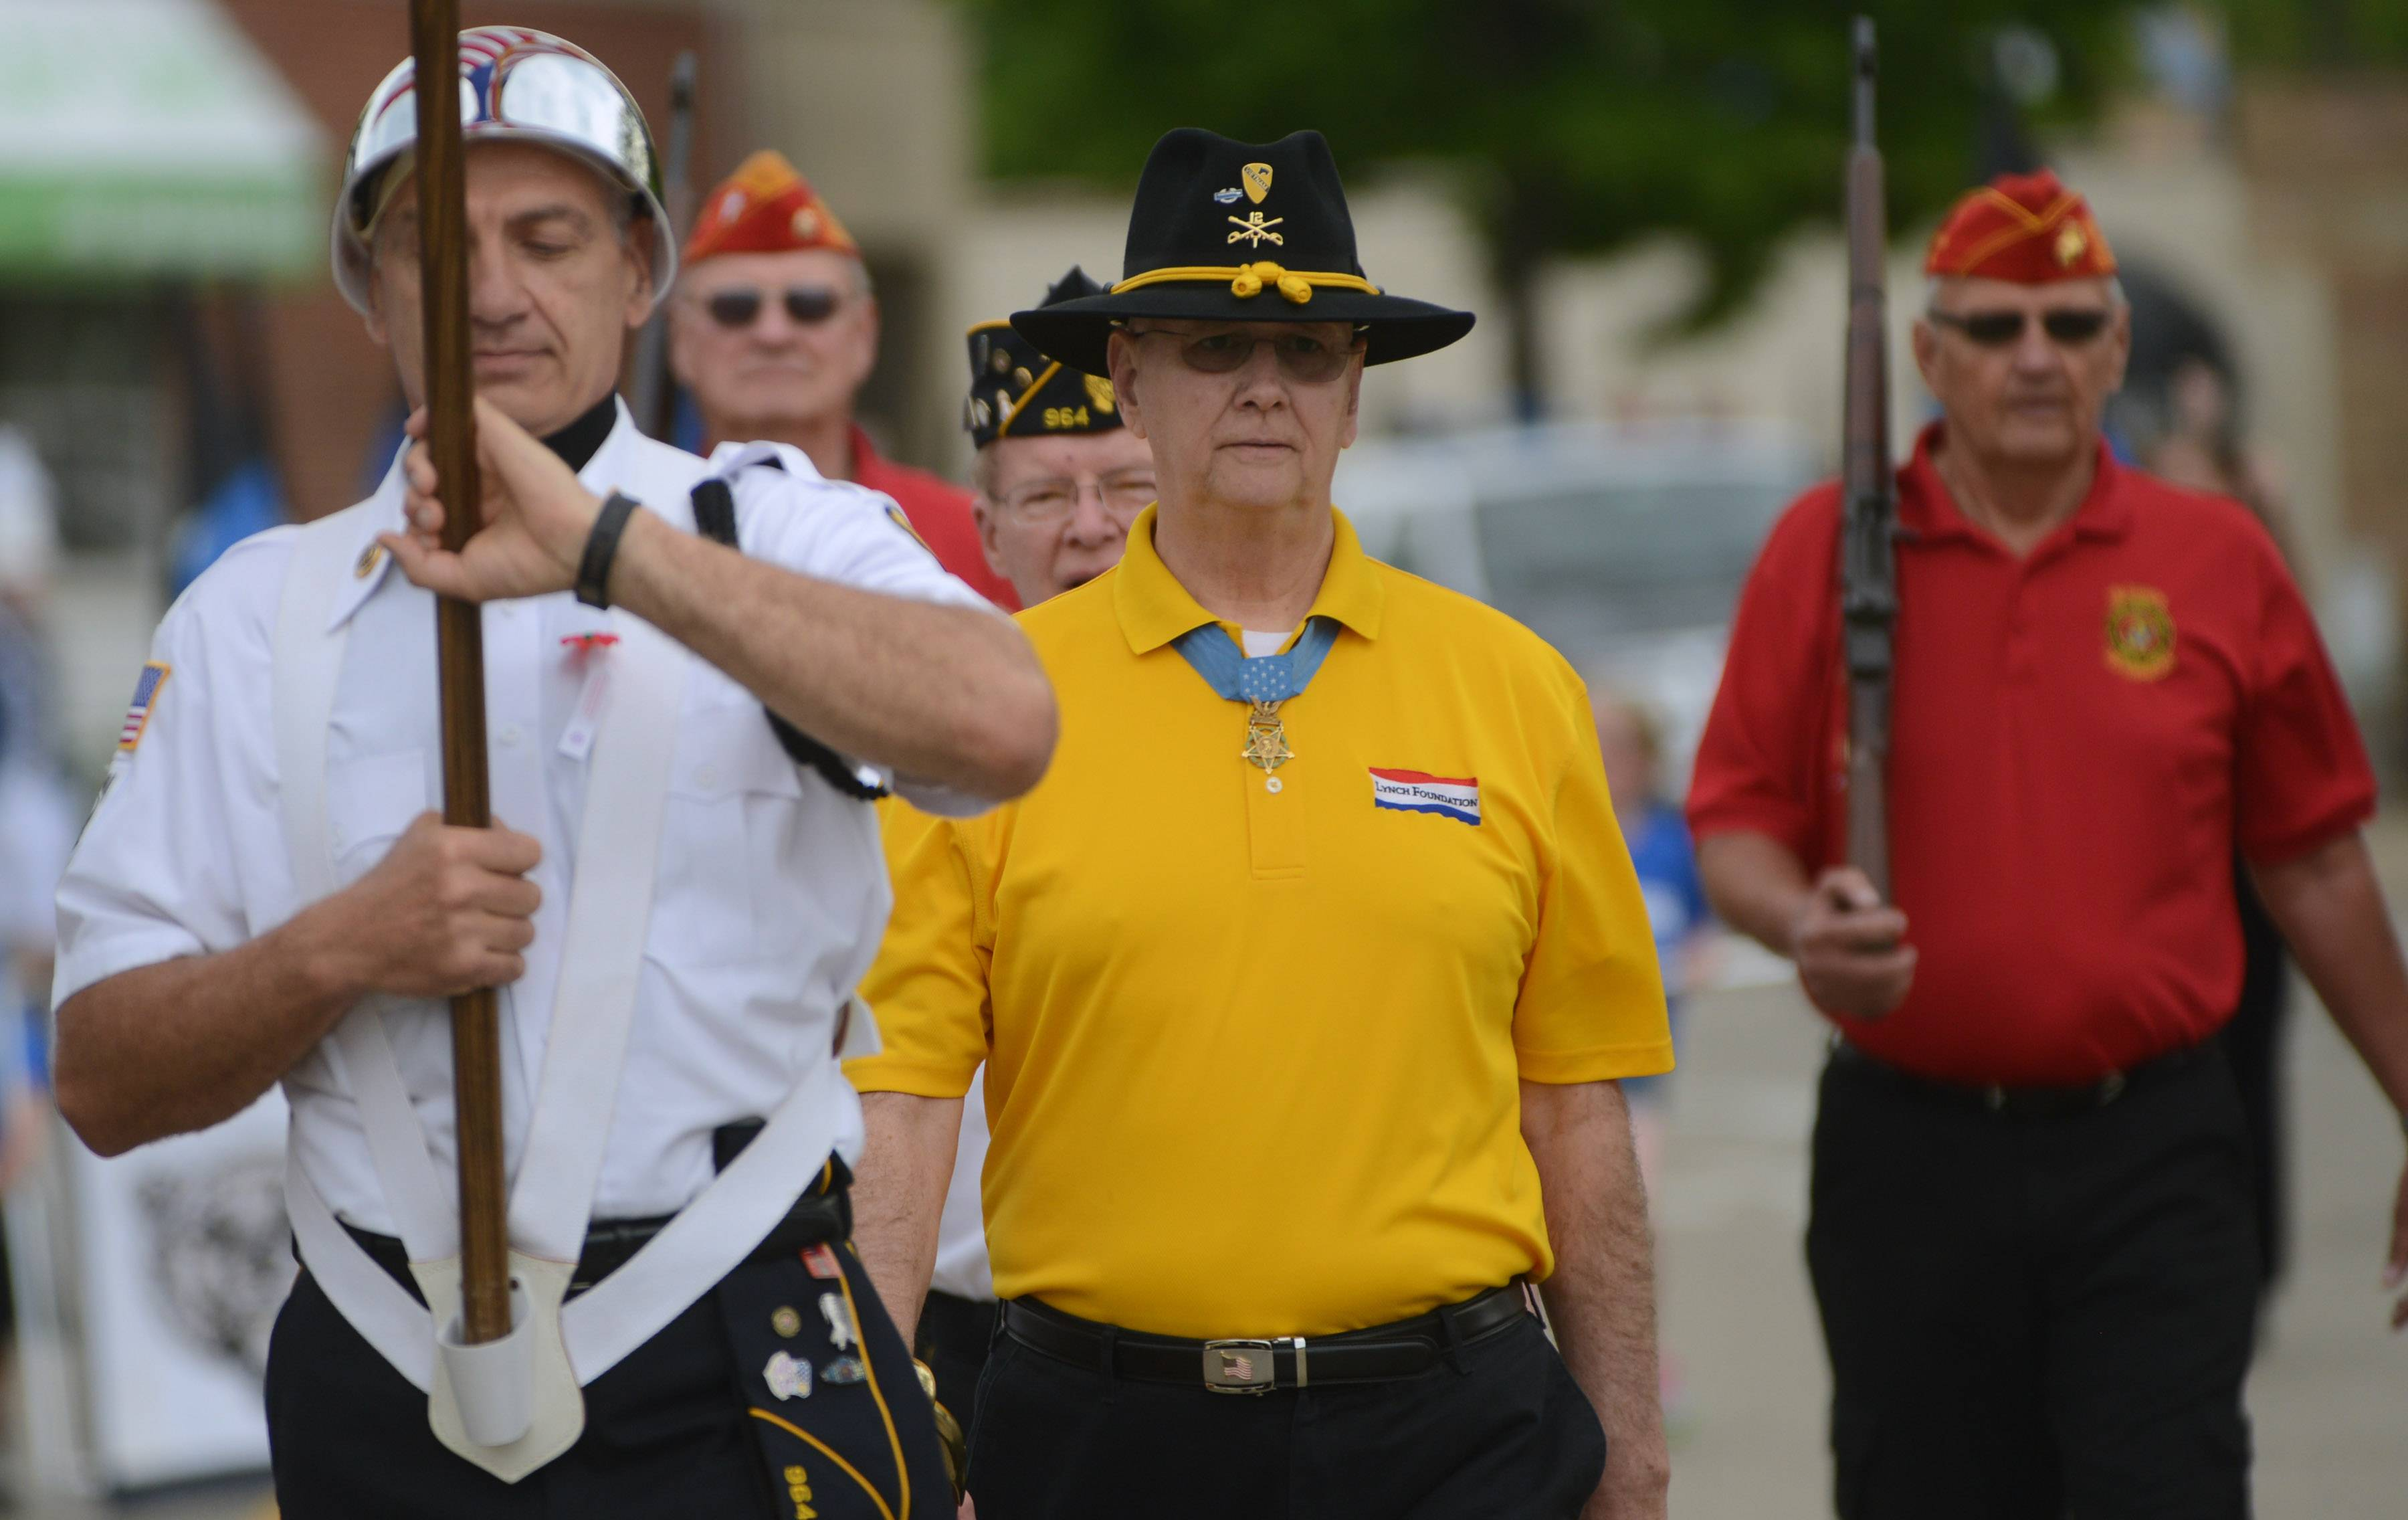 Medal of Honor recipient Allen Lynch of Gurnee walks in the Lake Zurich Memorial Day parade.